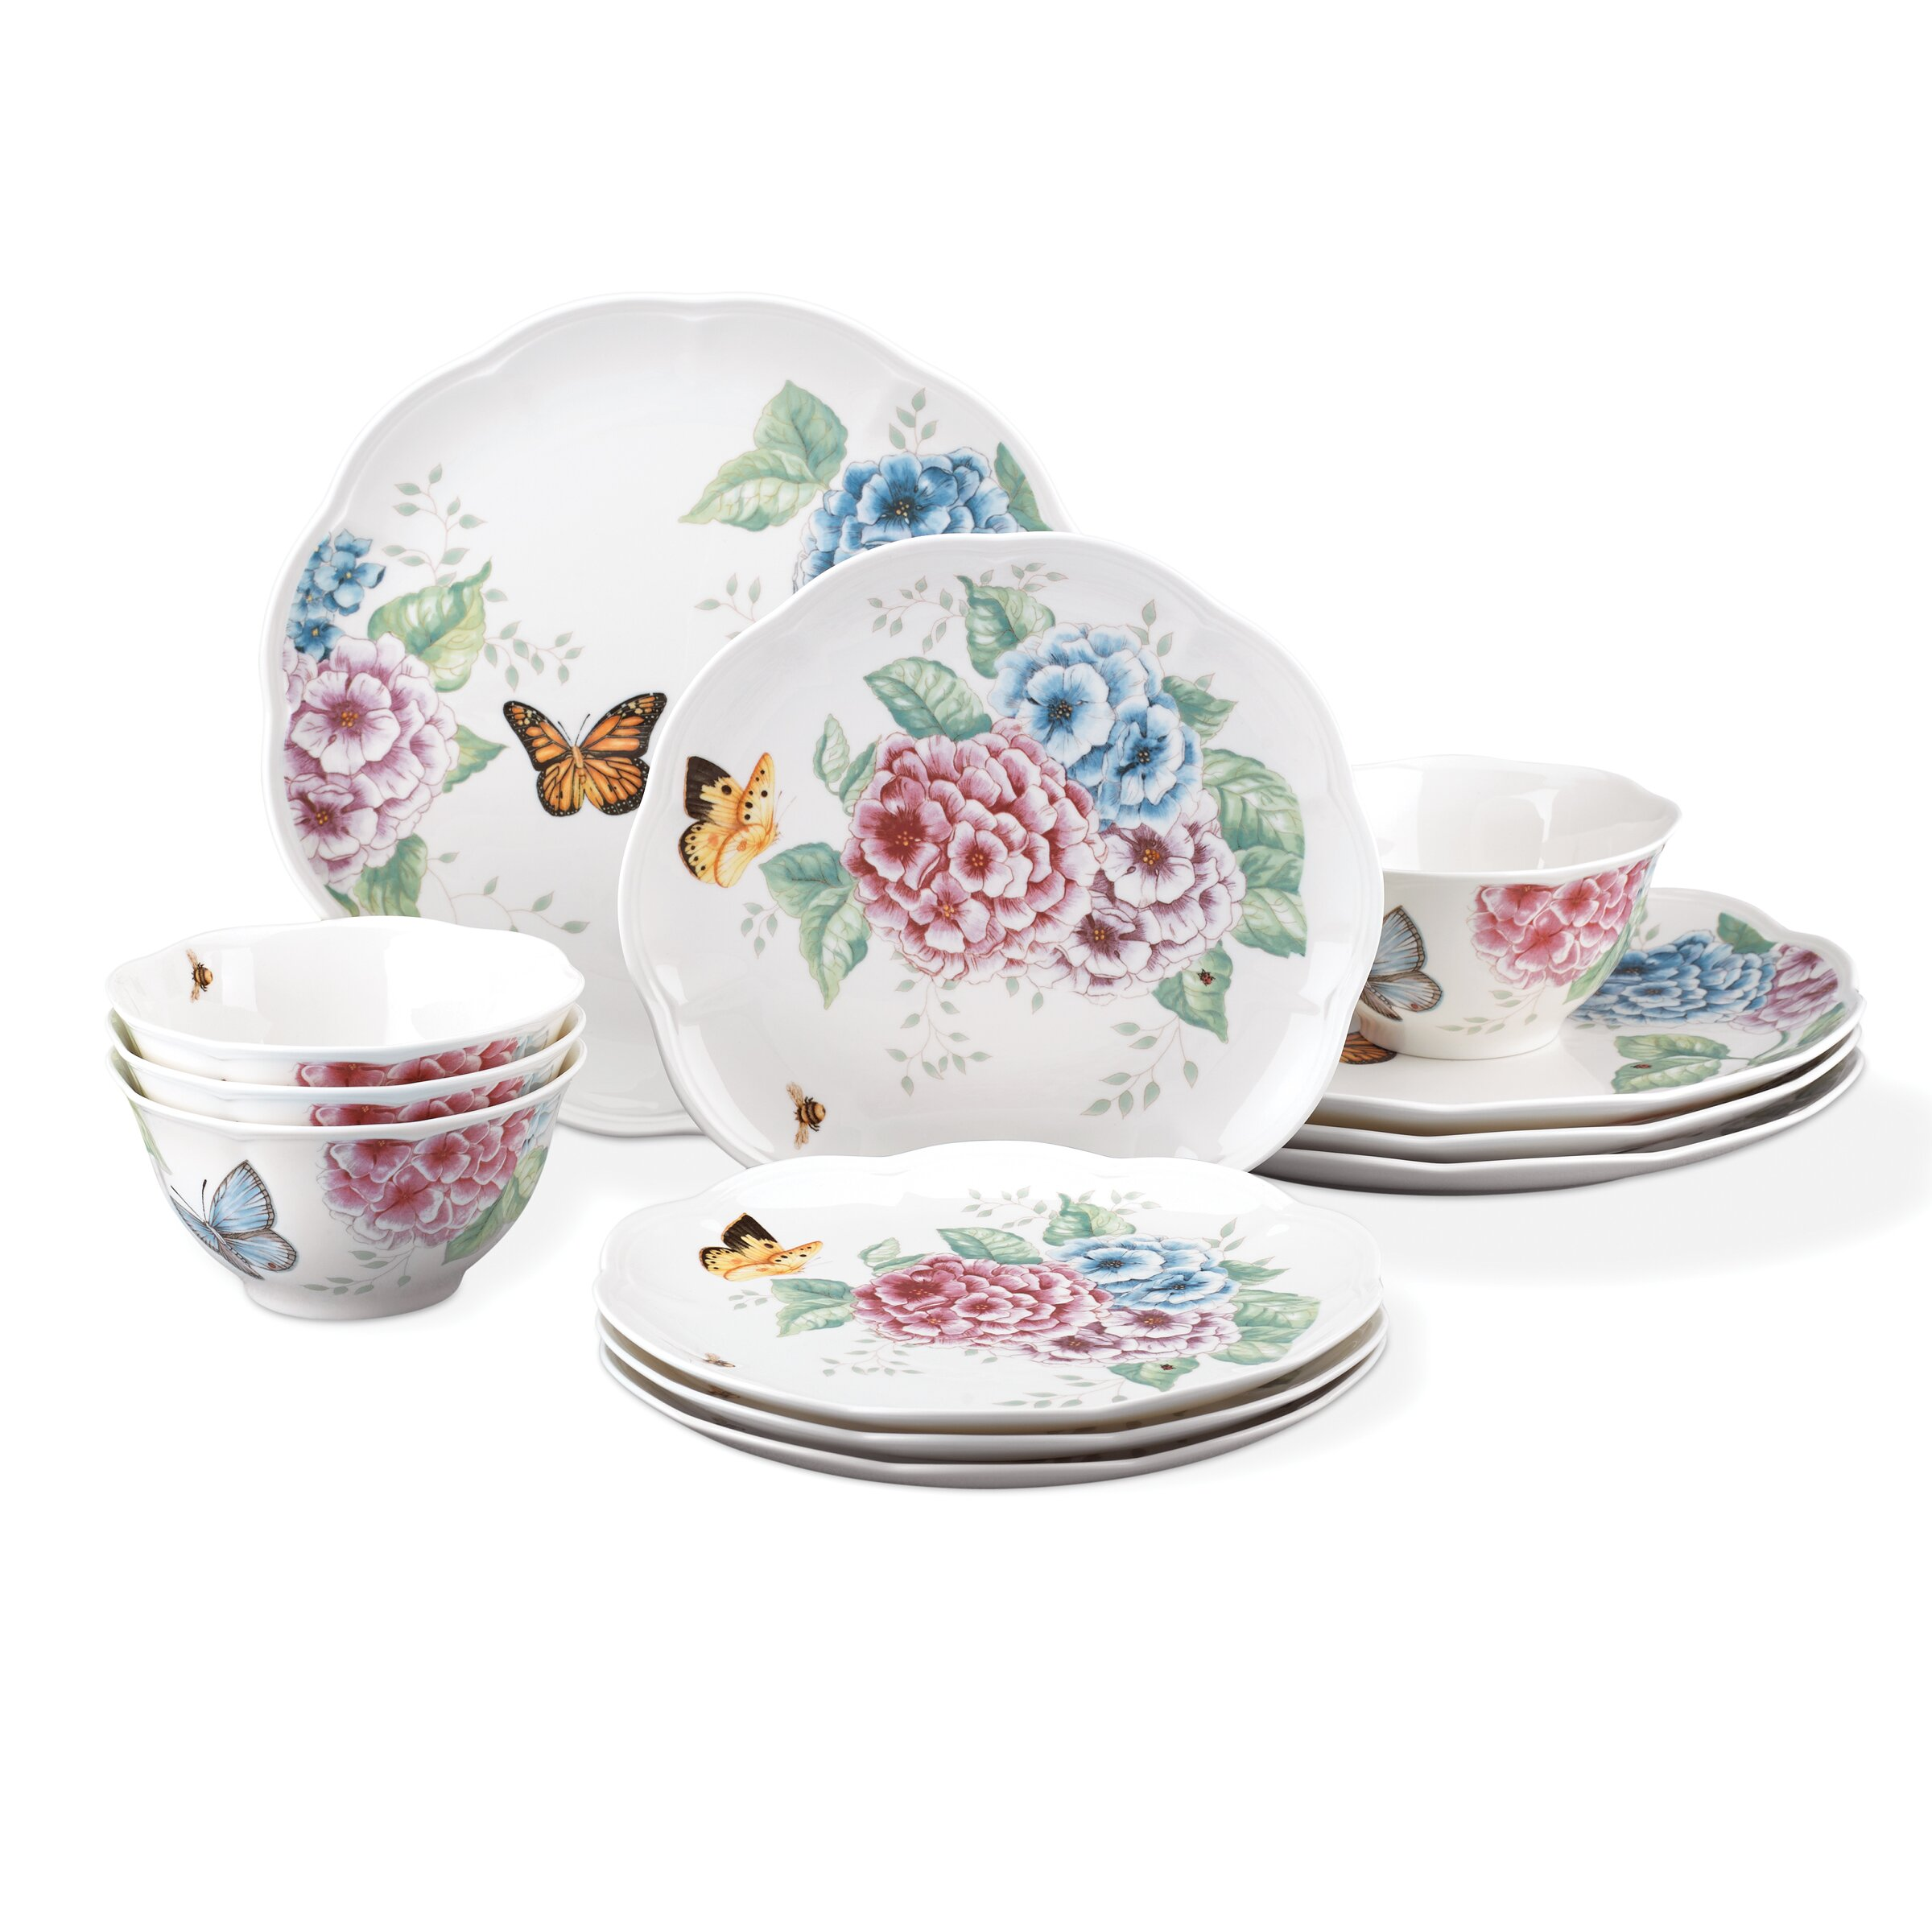 Lenox Butterfly Meadow Hydrangea 12 Piece Dinnerware Set